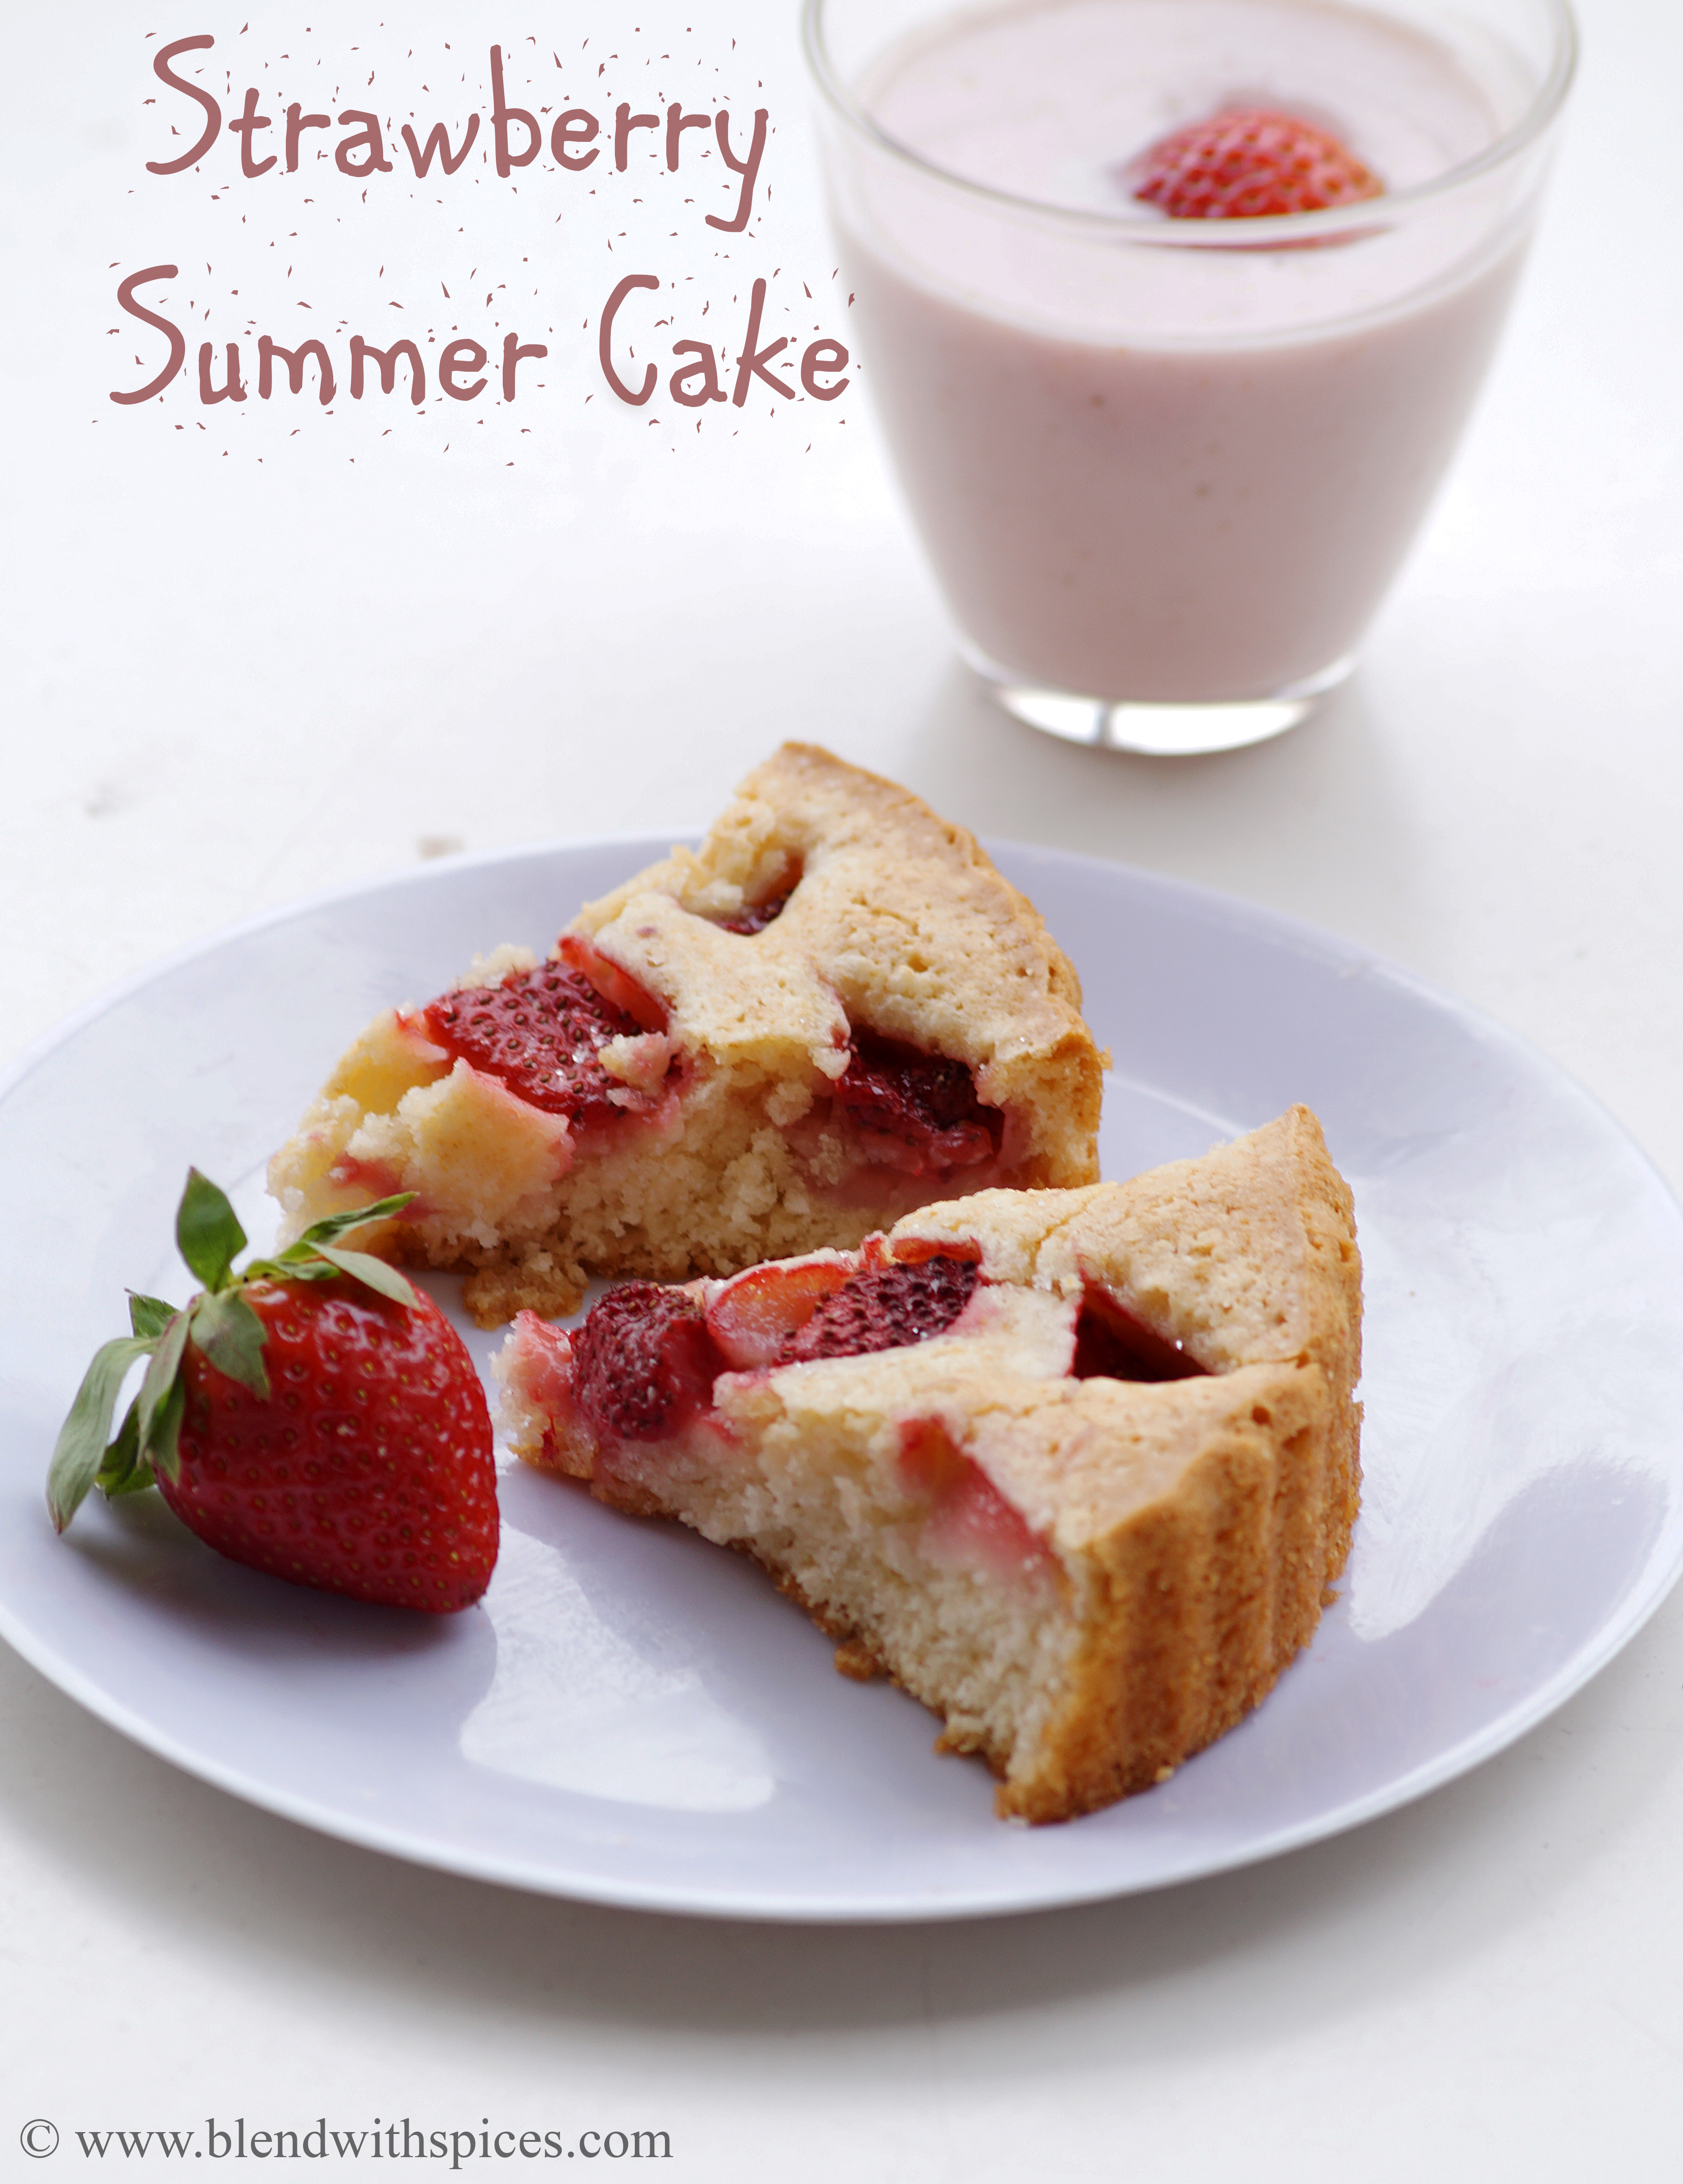 recipe for strawberry summer cake, eggless strawberry baking recipes